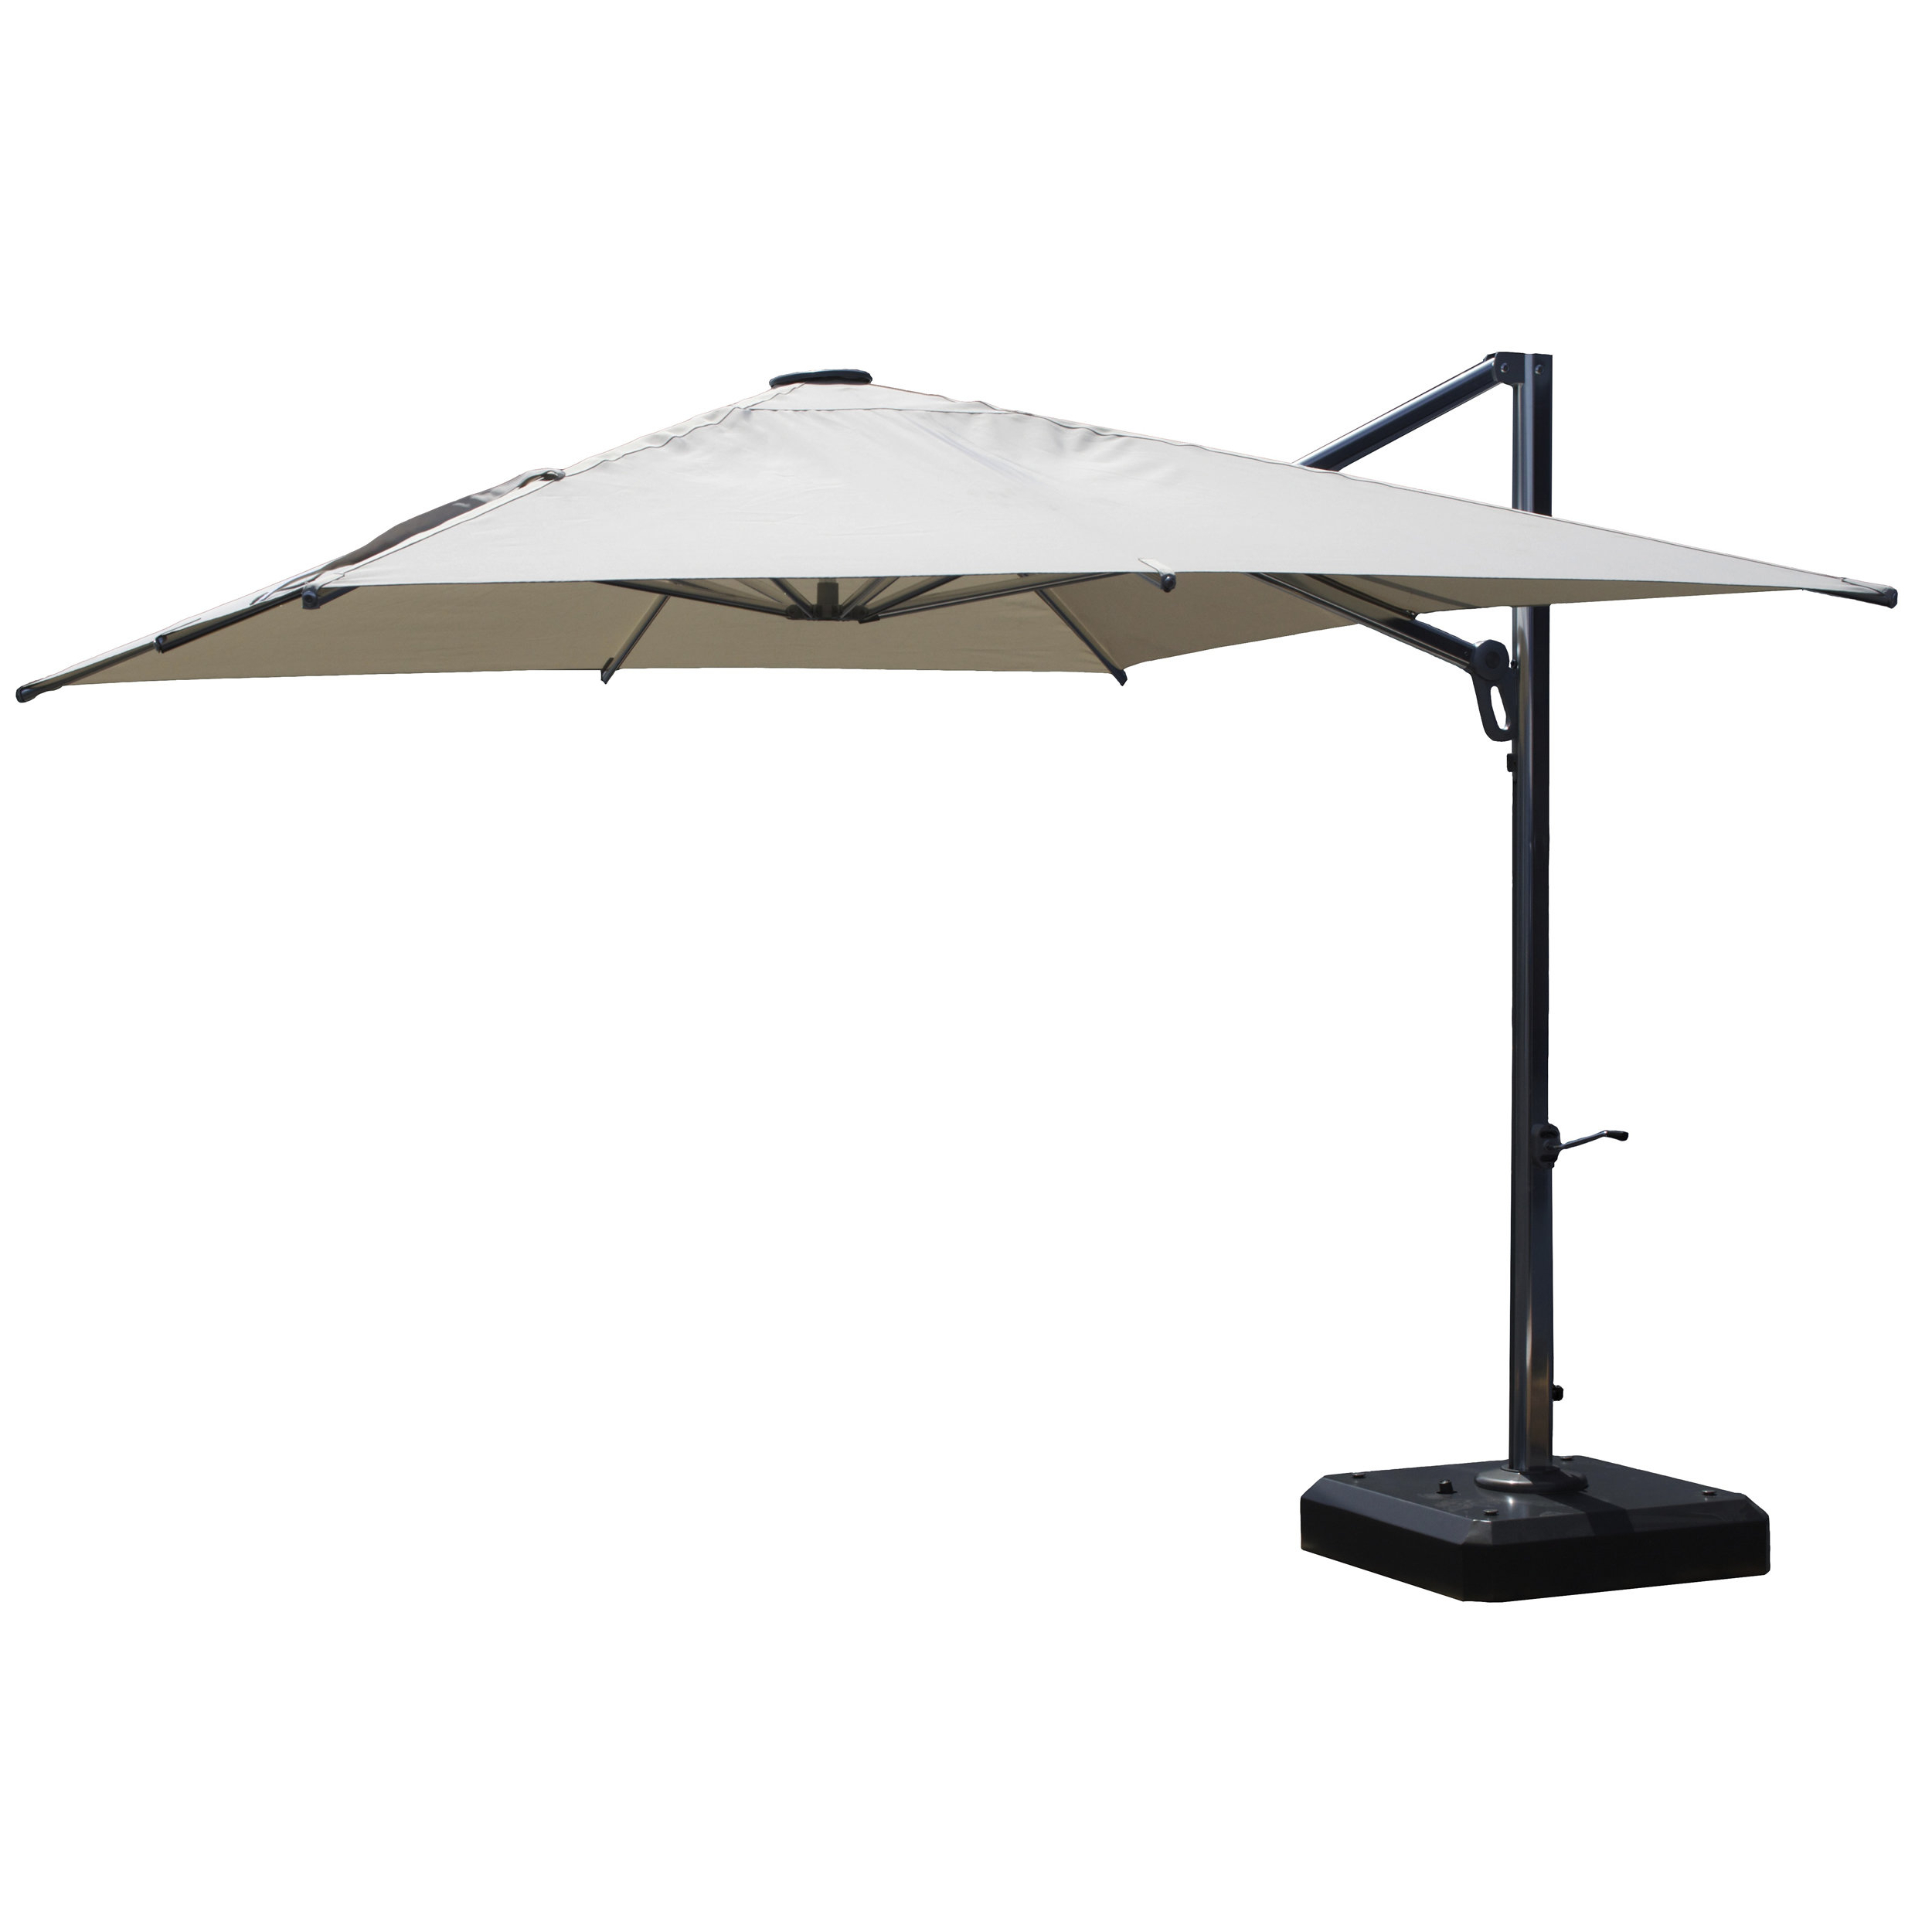 10' Square Cantilever Umbrella In Newest Emely Cantilever Sunbrella Umbrellas (View 1 of 20)